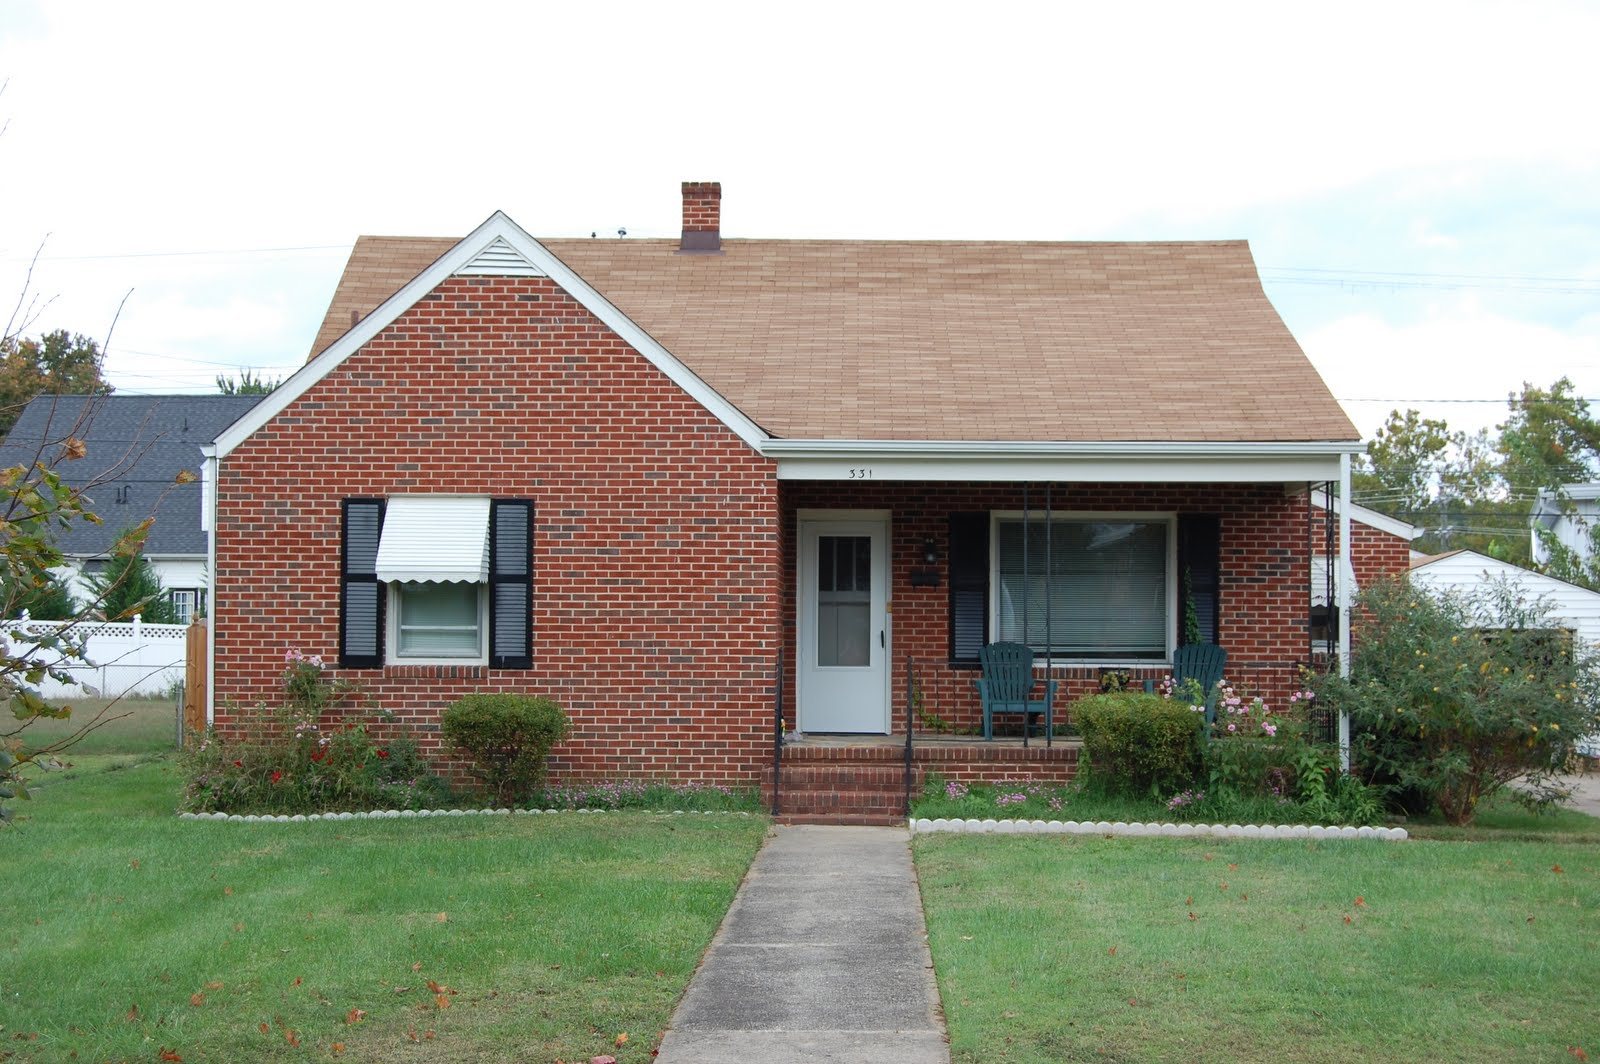 This Building Is A One Story, Four Bay House. The Exterior Brick Walls Sit  Atop A Cinder Block Foundation. The Roof Is Side Gabled With A Cross Gable  In The ...